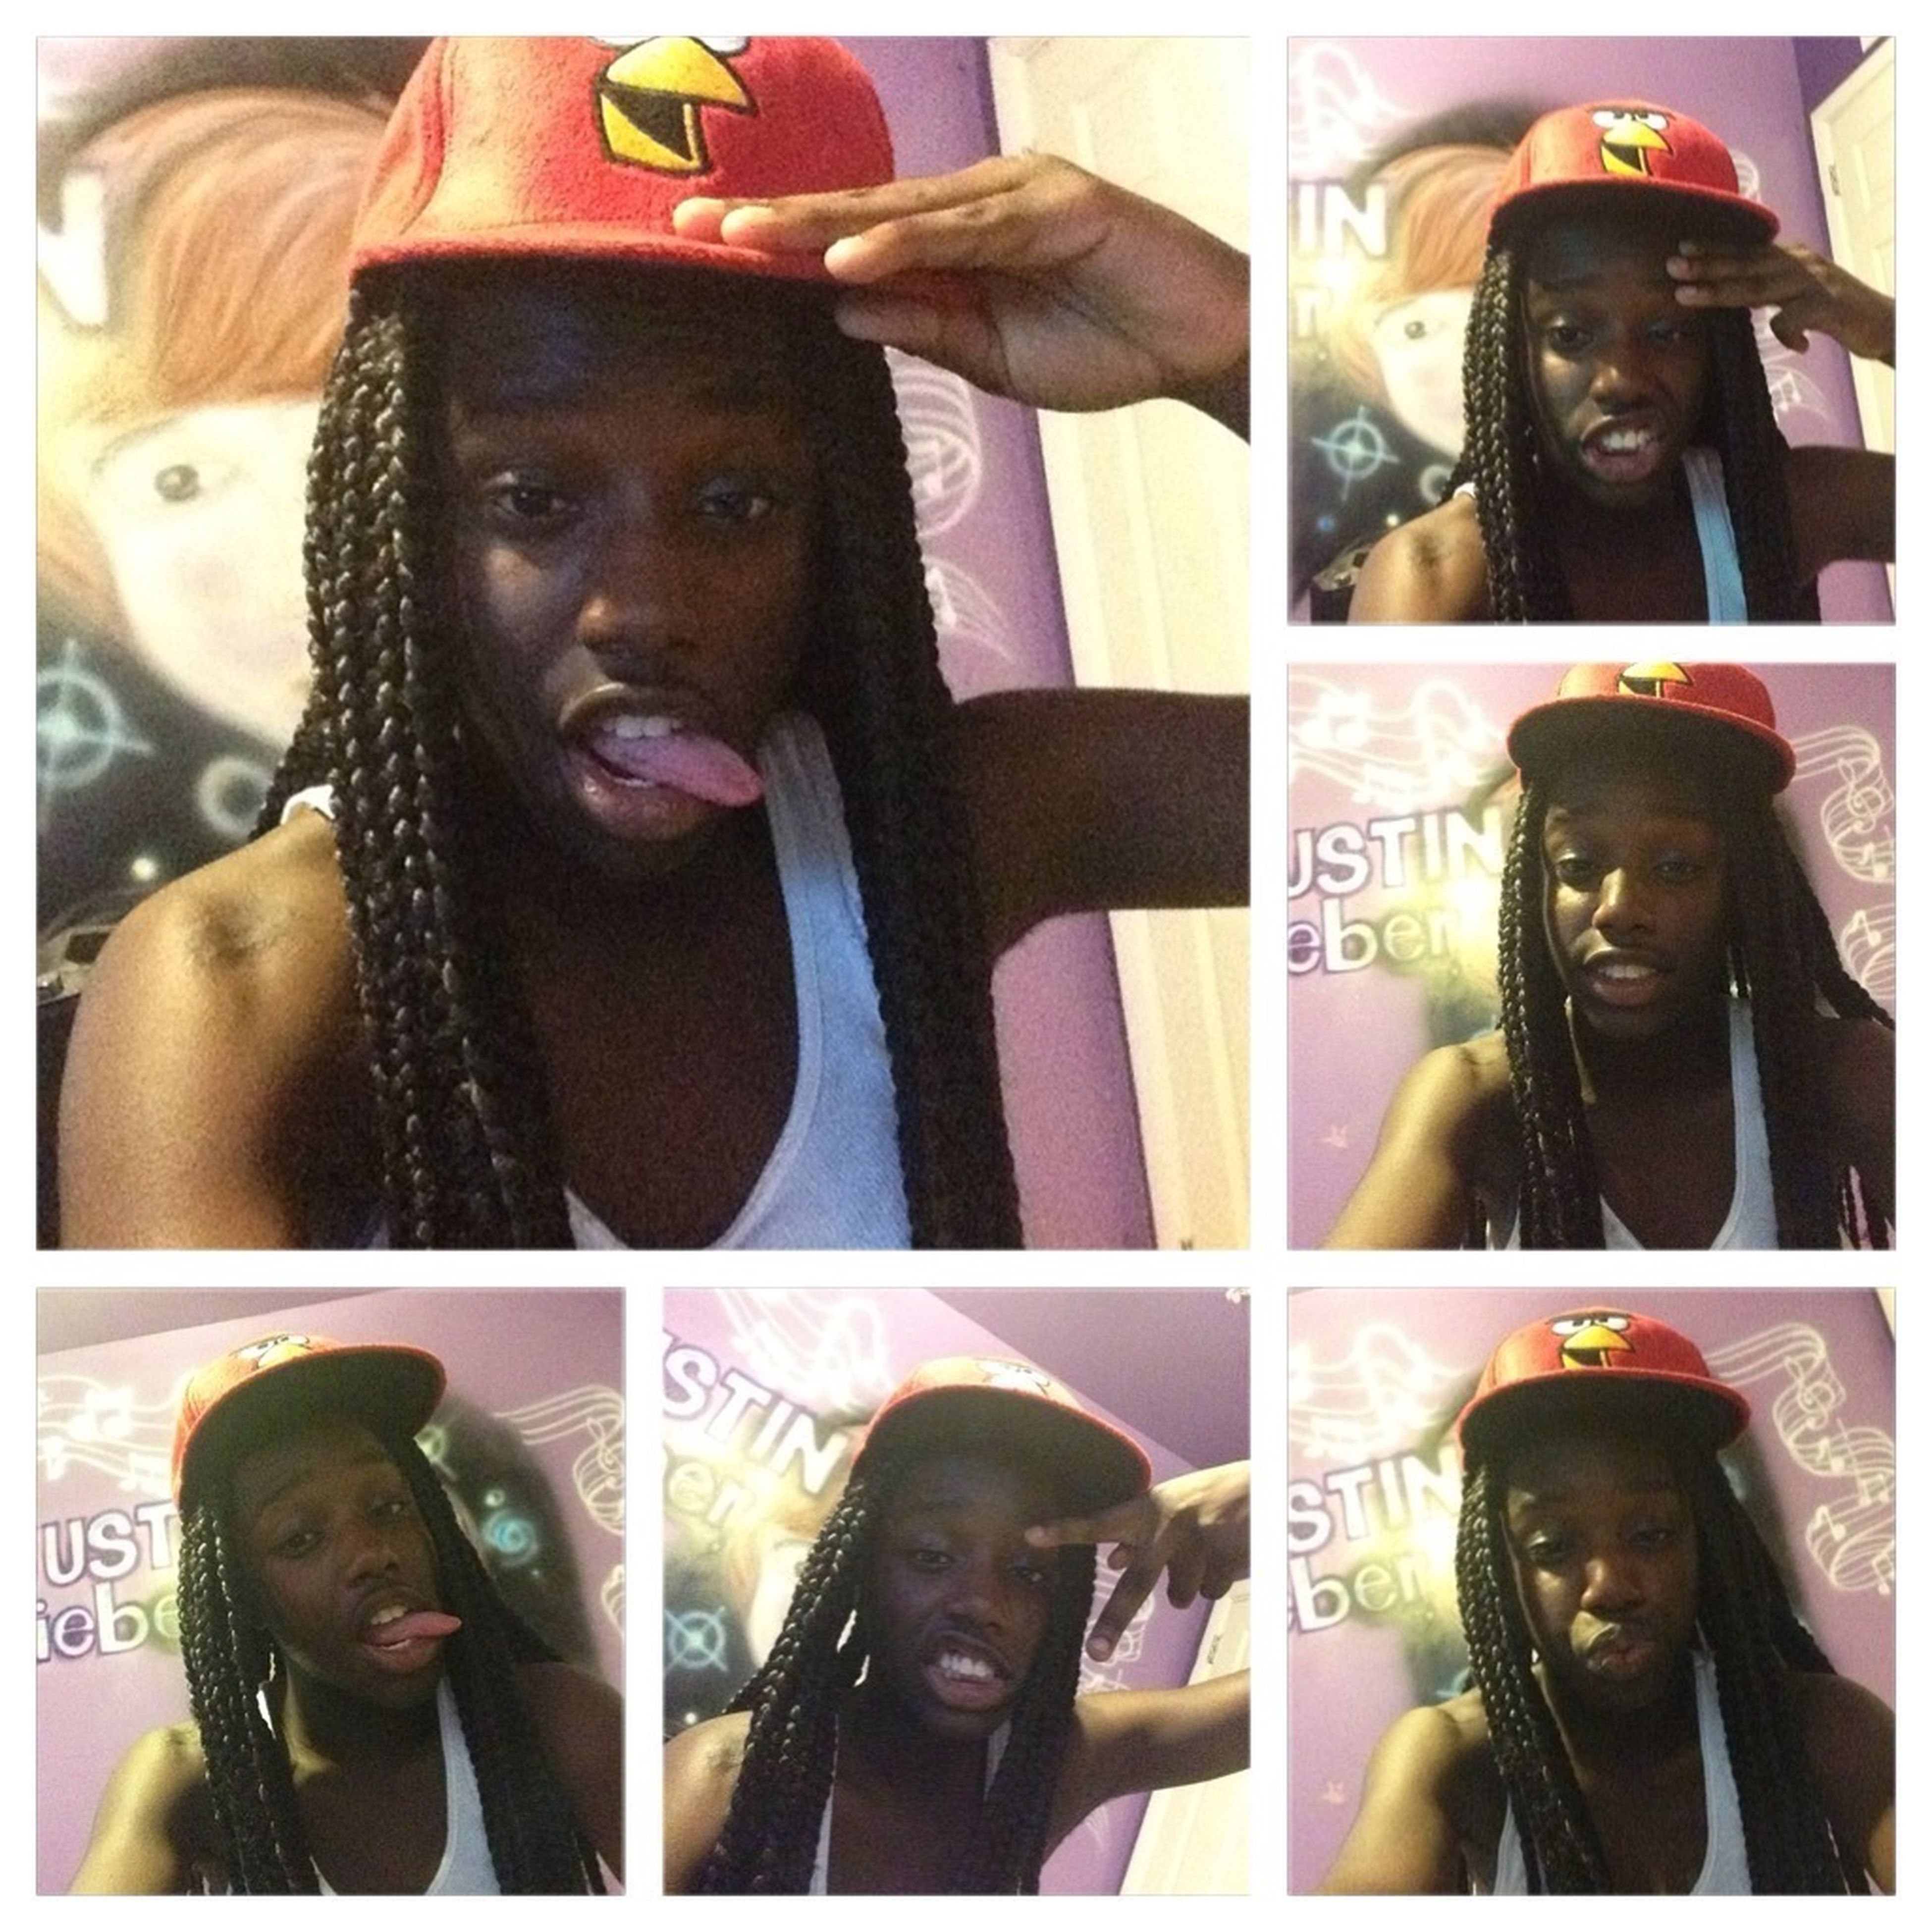 Mee I Think I Look Cute Wit A Hat On ..like Of U Think Soo To N Comment